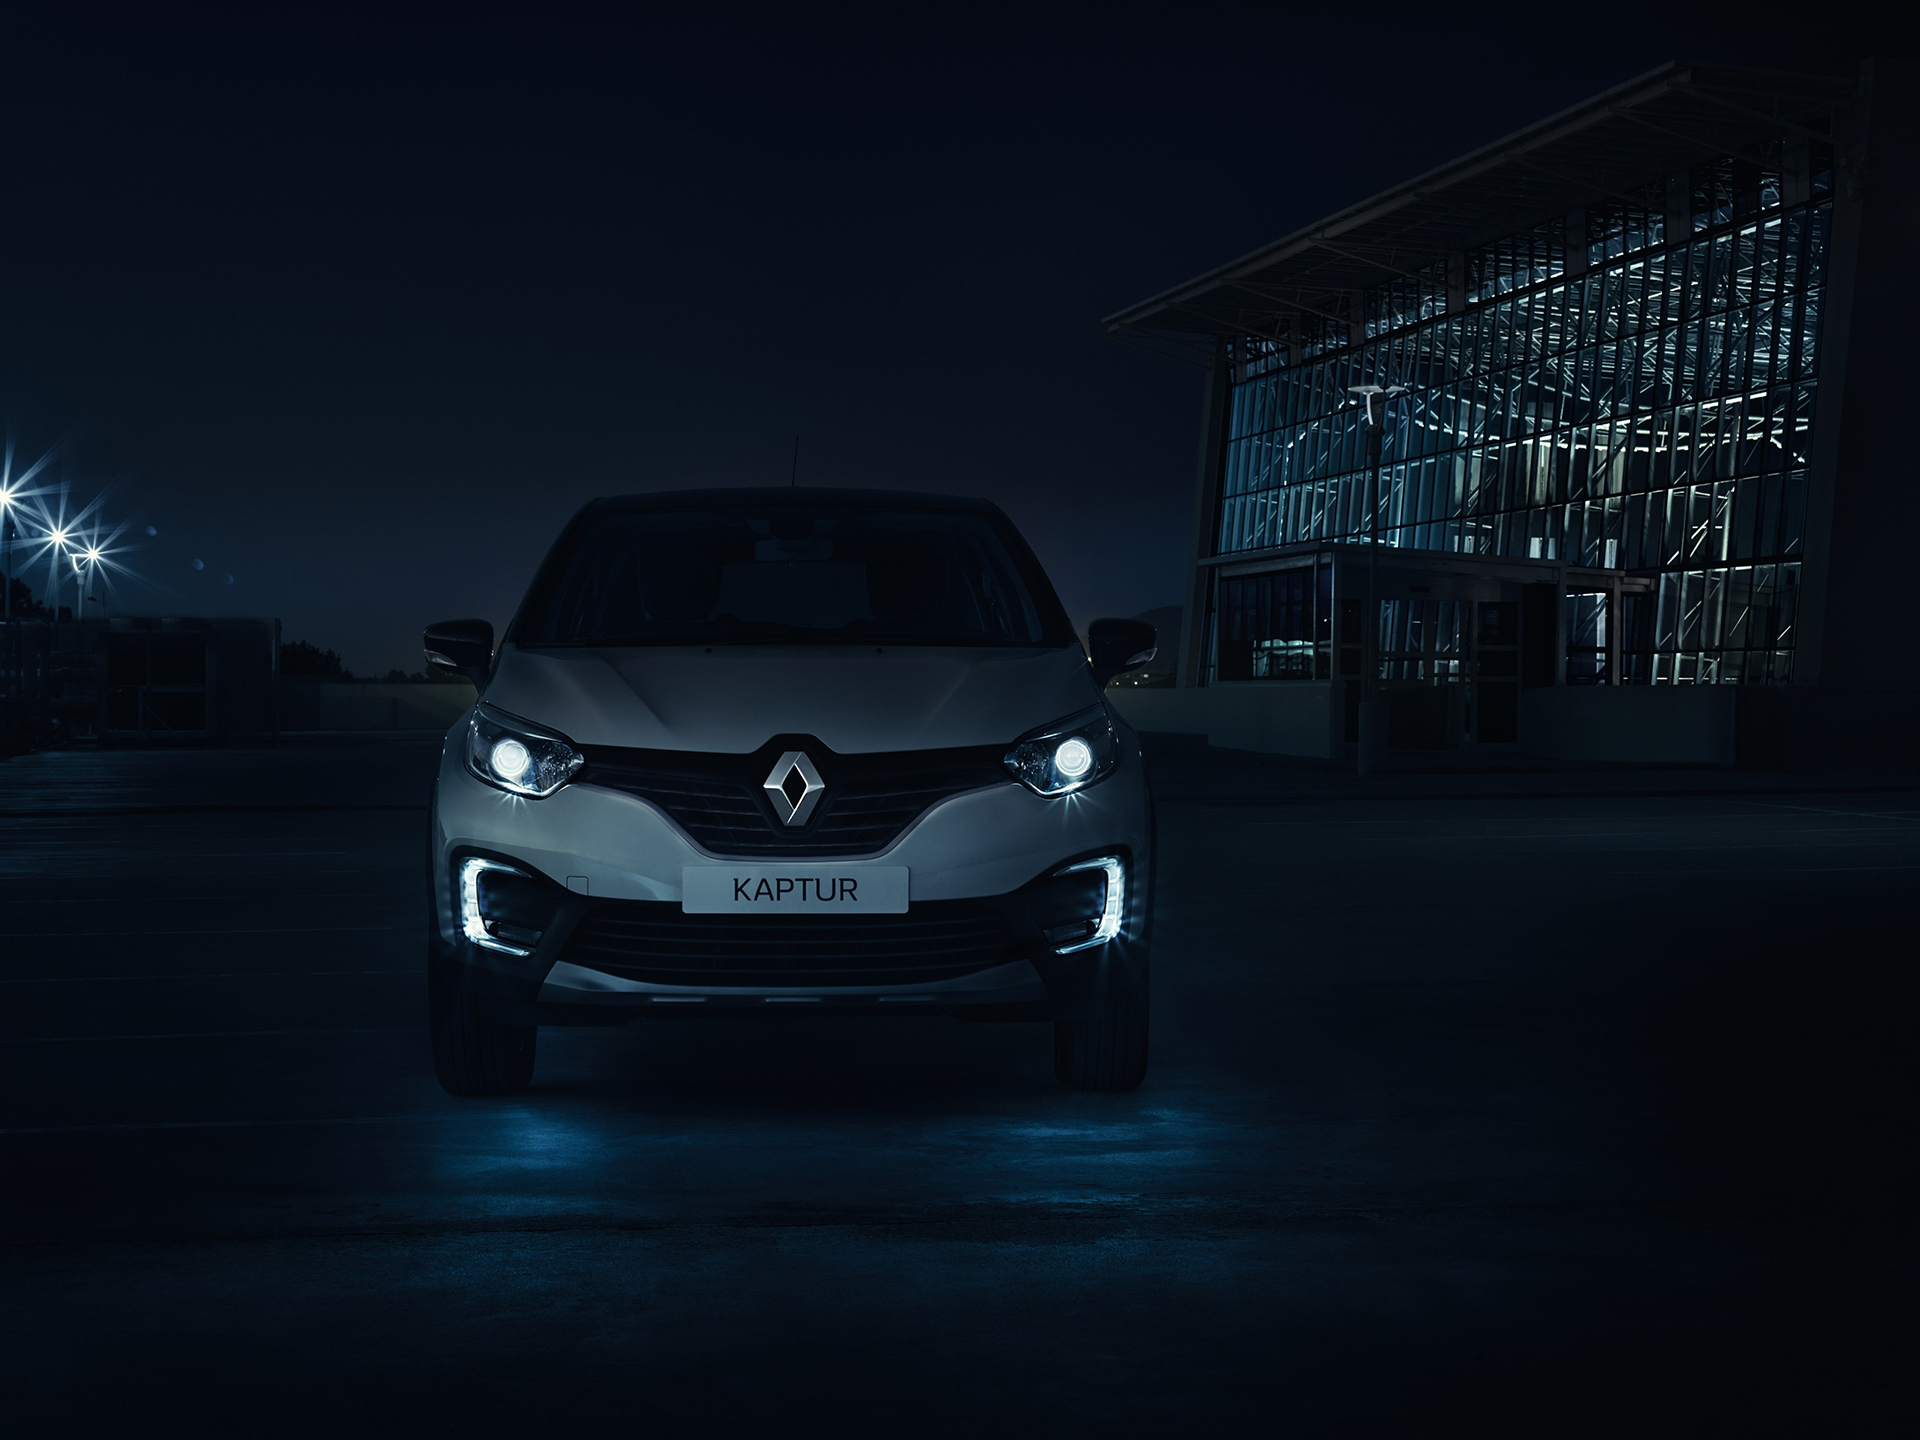 Renault Kaptur - 2016 - night front light